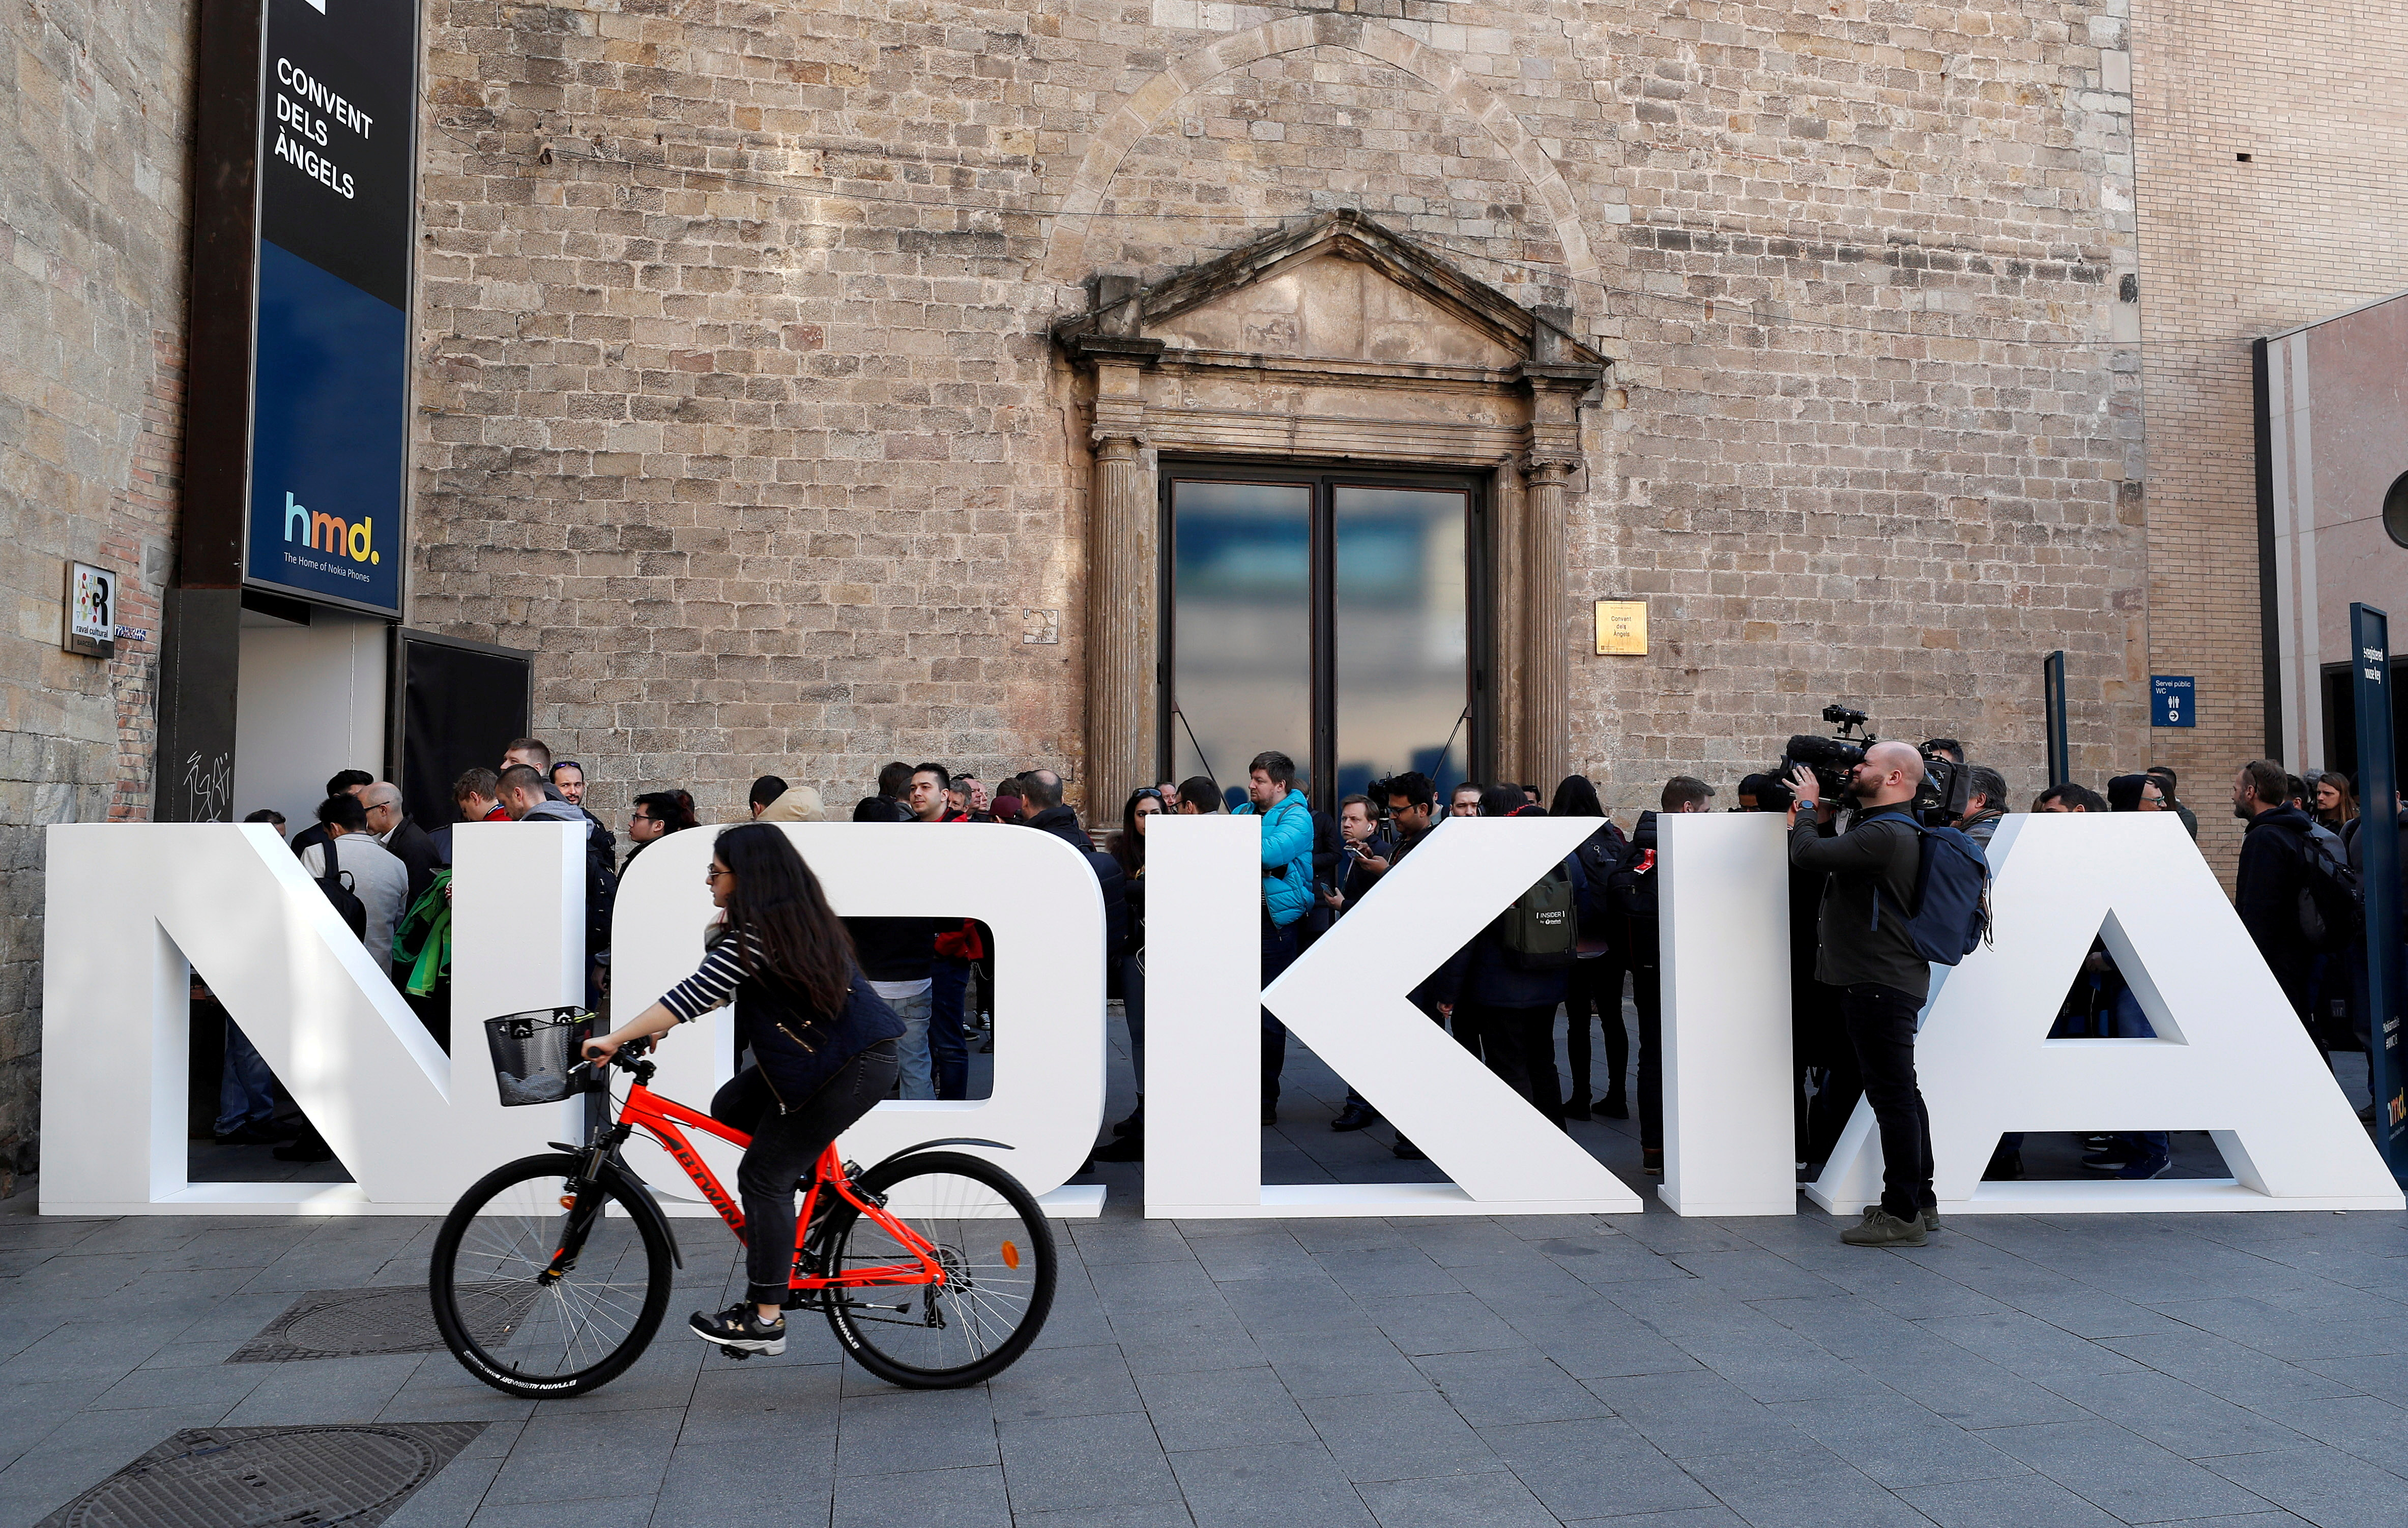 A cyclist rides past a Nokia logo during the Mobile World Congress in Barcelona, Spain February 25, 2018. REUTERS/Yves Herman